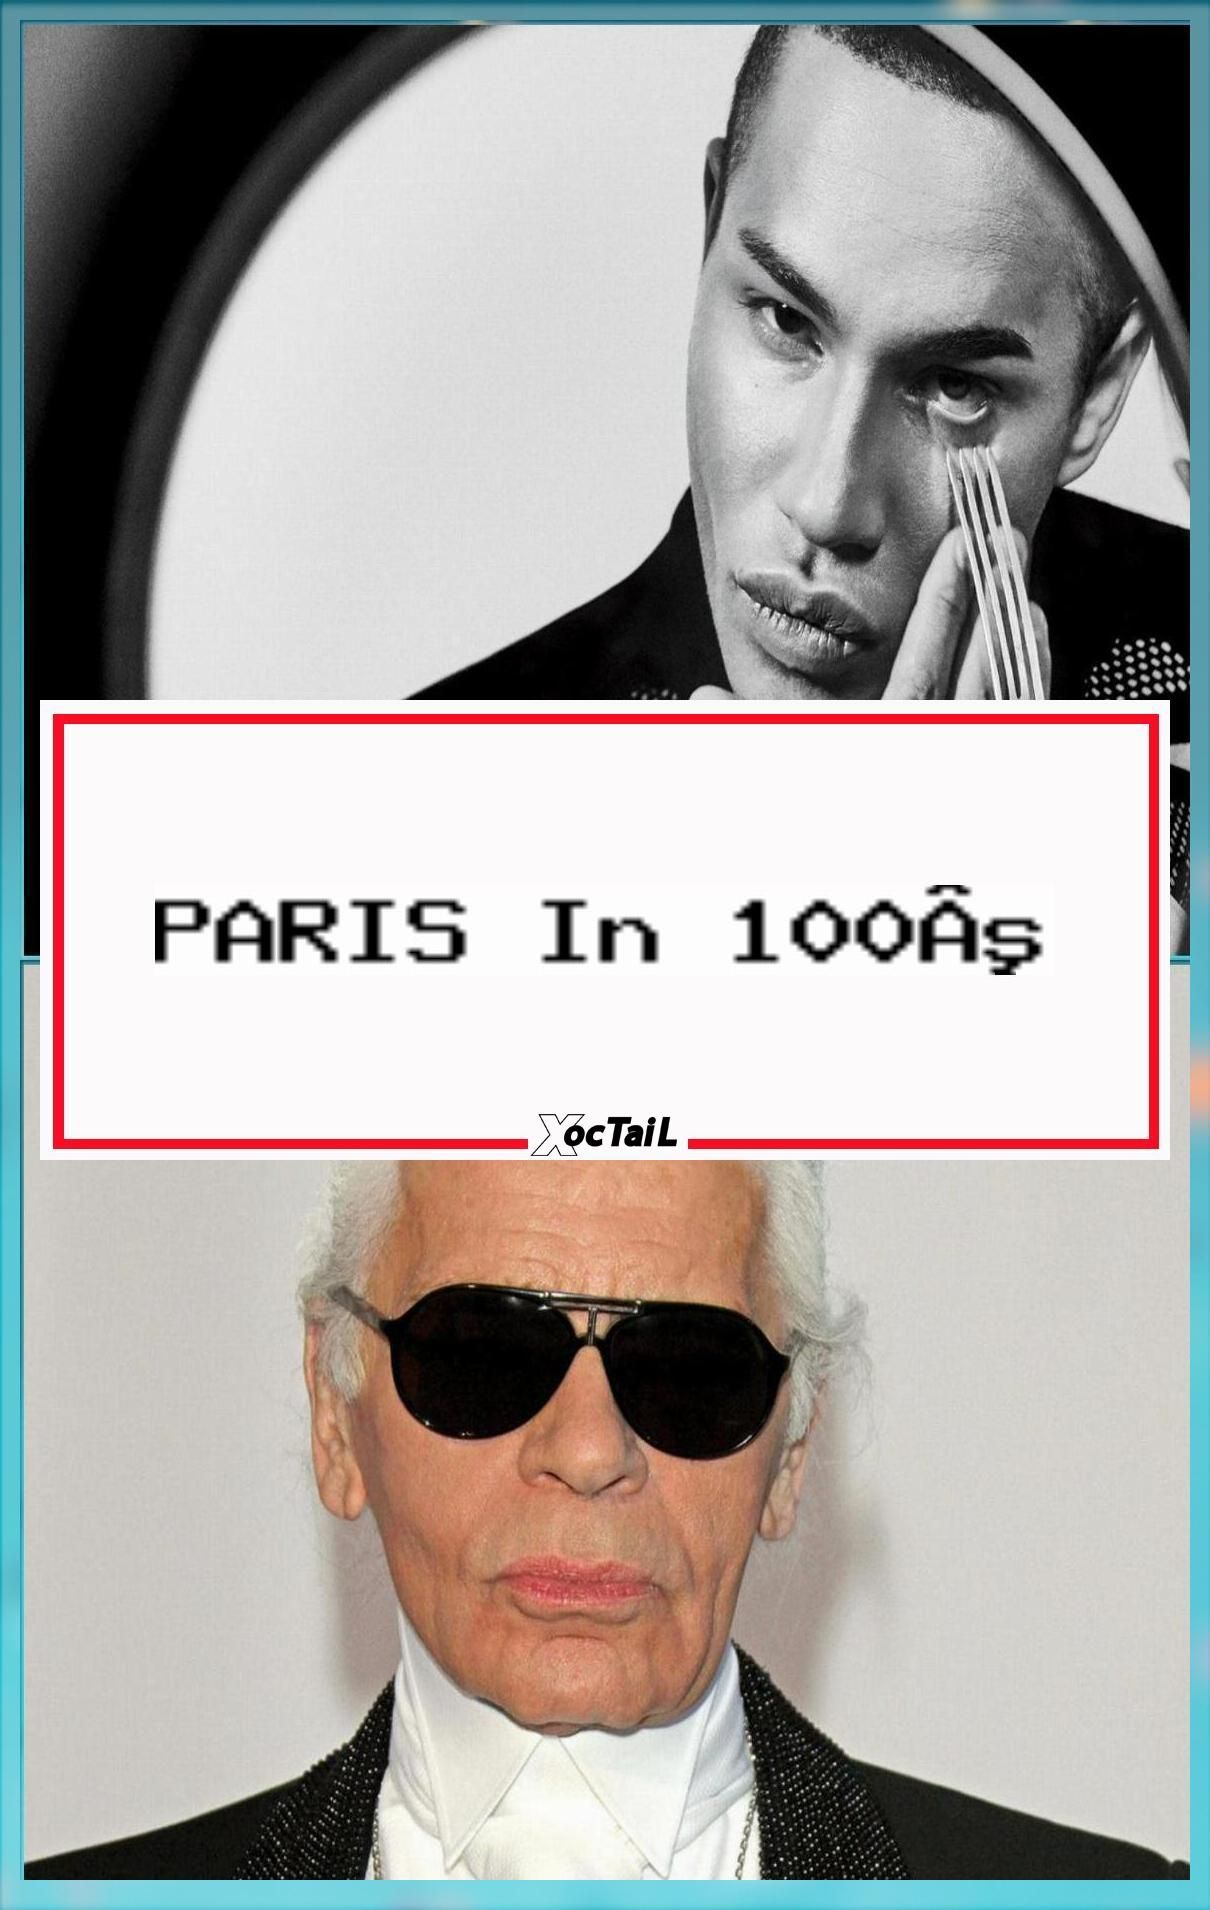 Paris In 100º Top 10 Famous French Fashion Designers One Designers Karl Lagerfeld Famous Luxury Most Couture Chanel Ii Part Fendi Germany Hands Dresses Des 2020